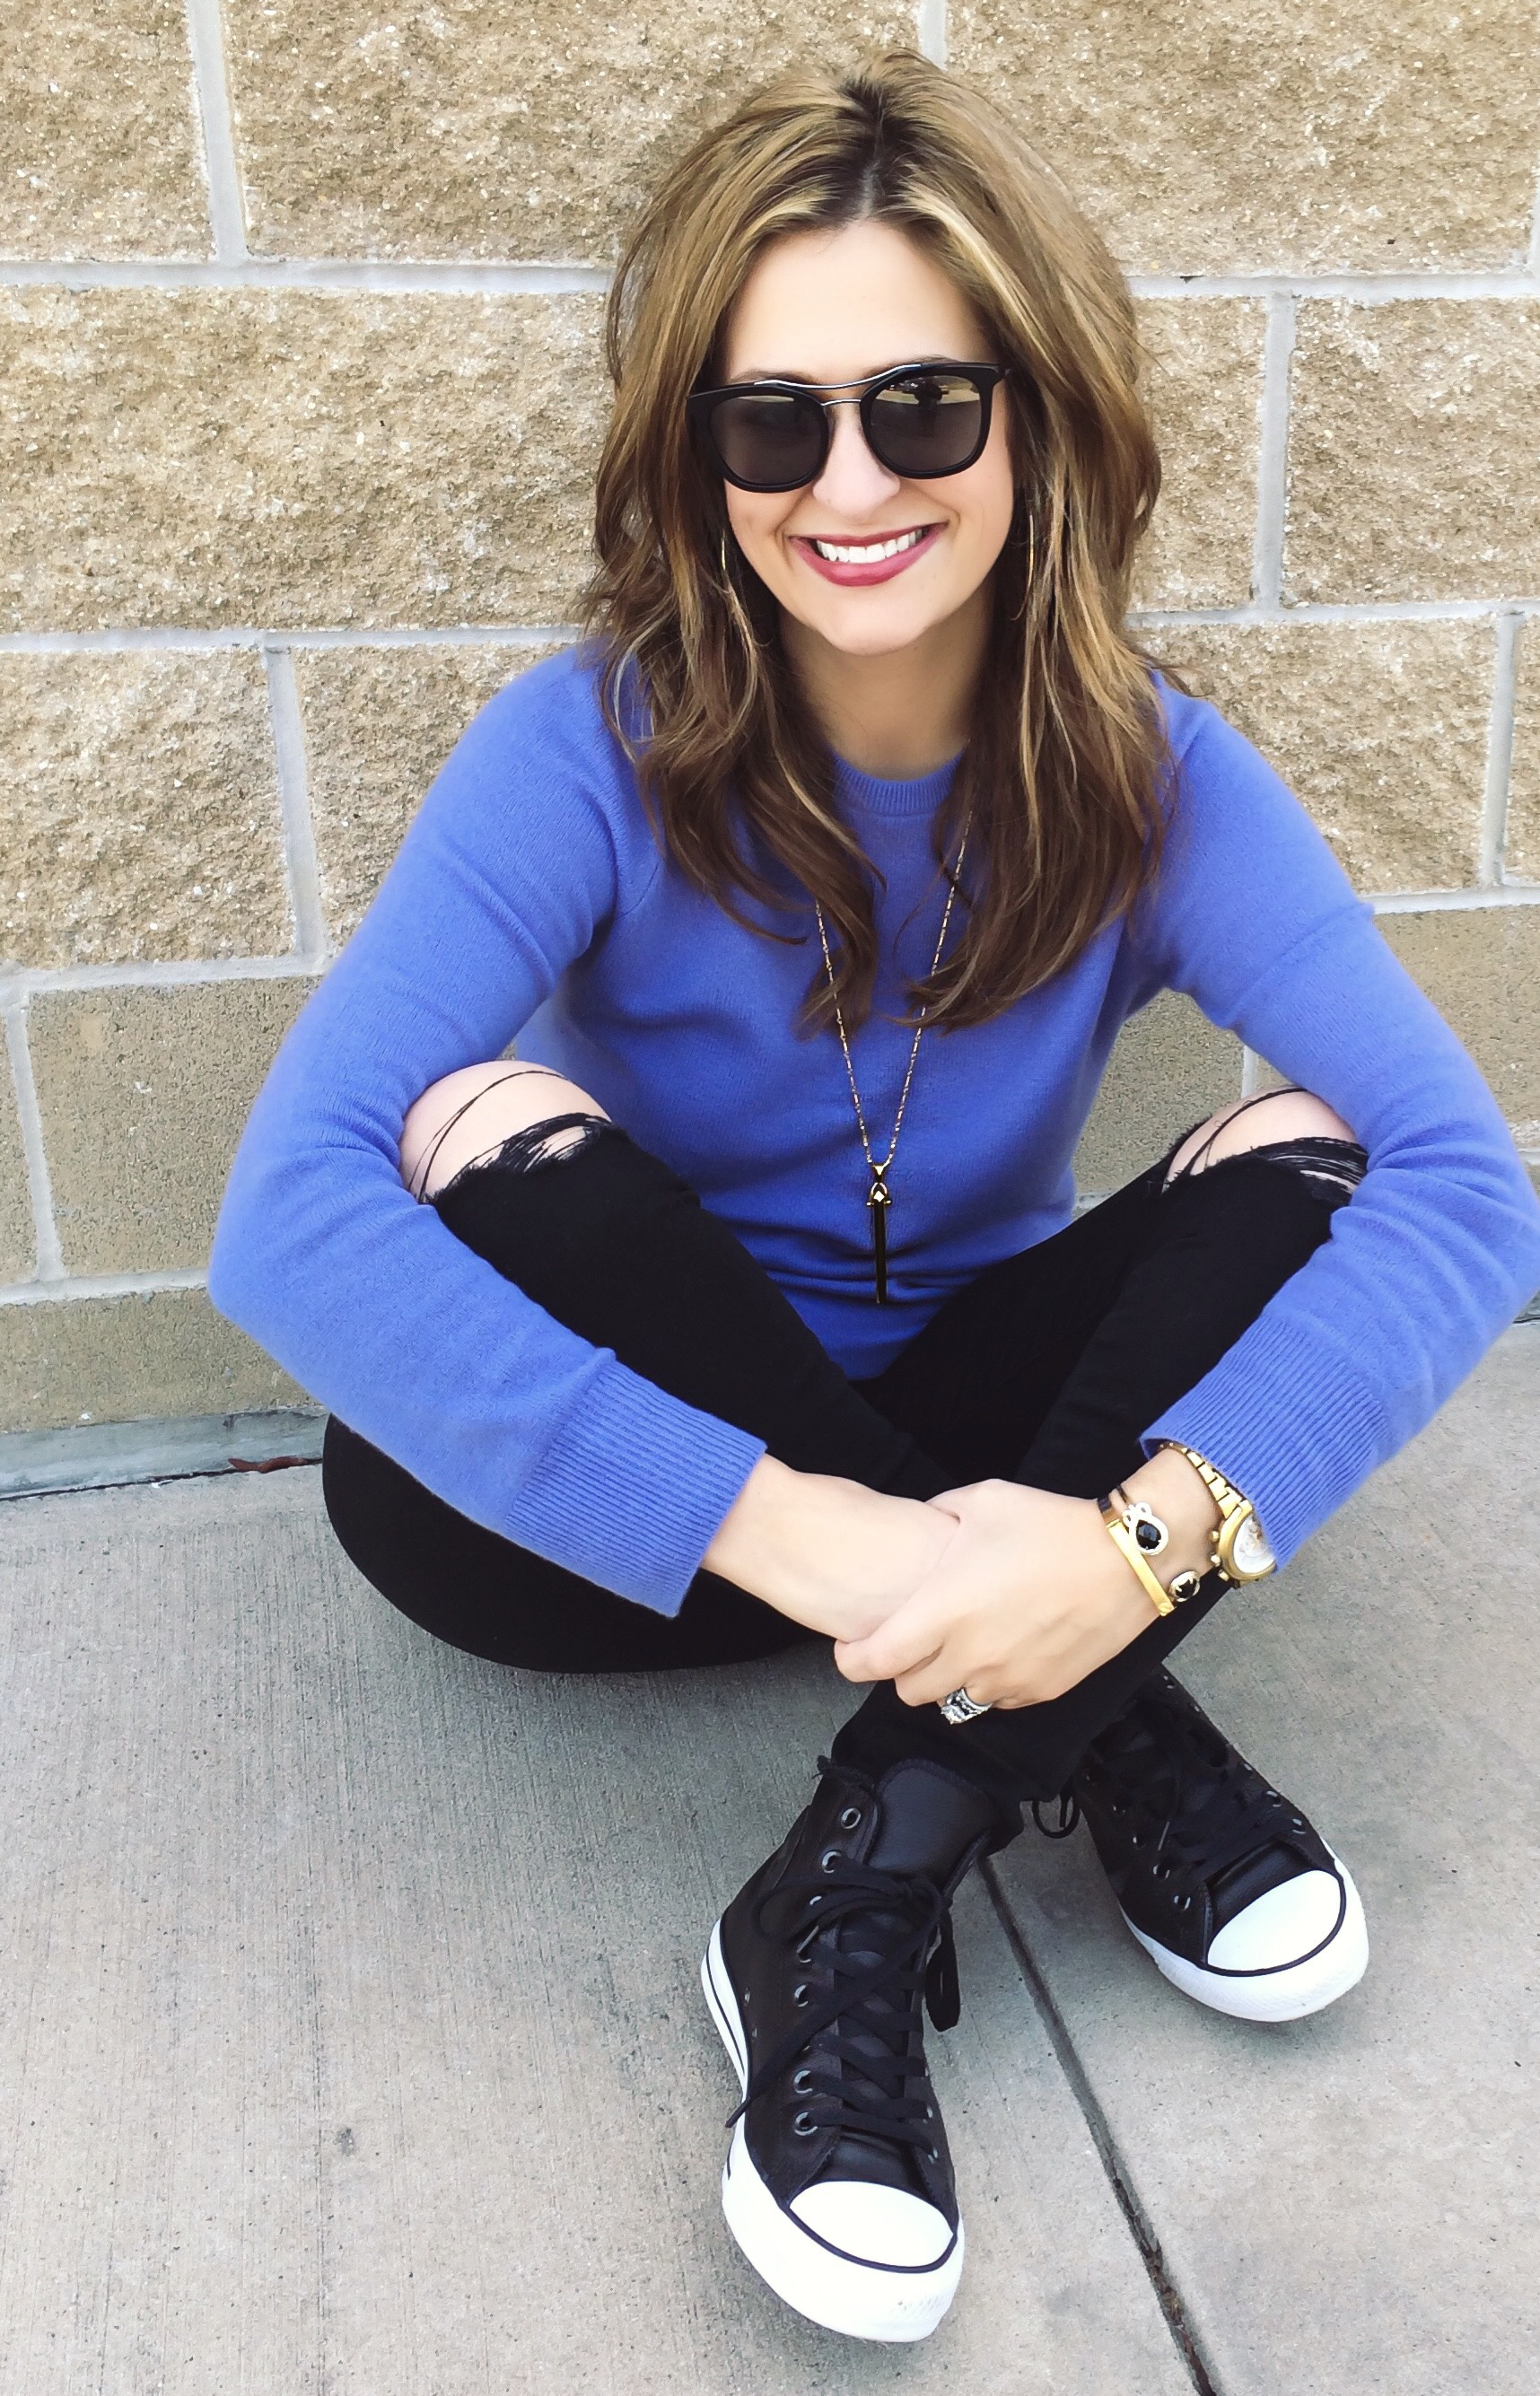 High top sneakers:  Converse  Jeans:  Mother  Necklace:  Stella & Dot